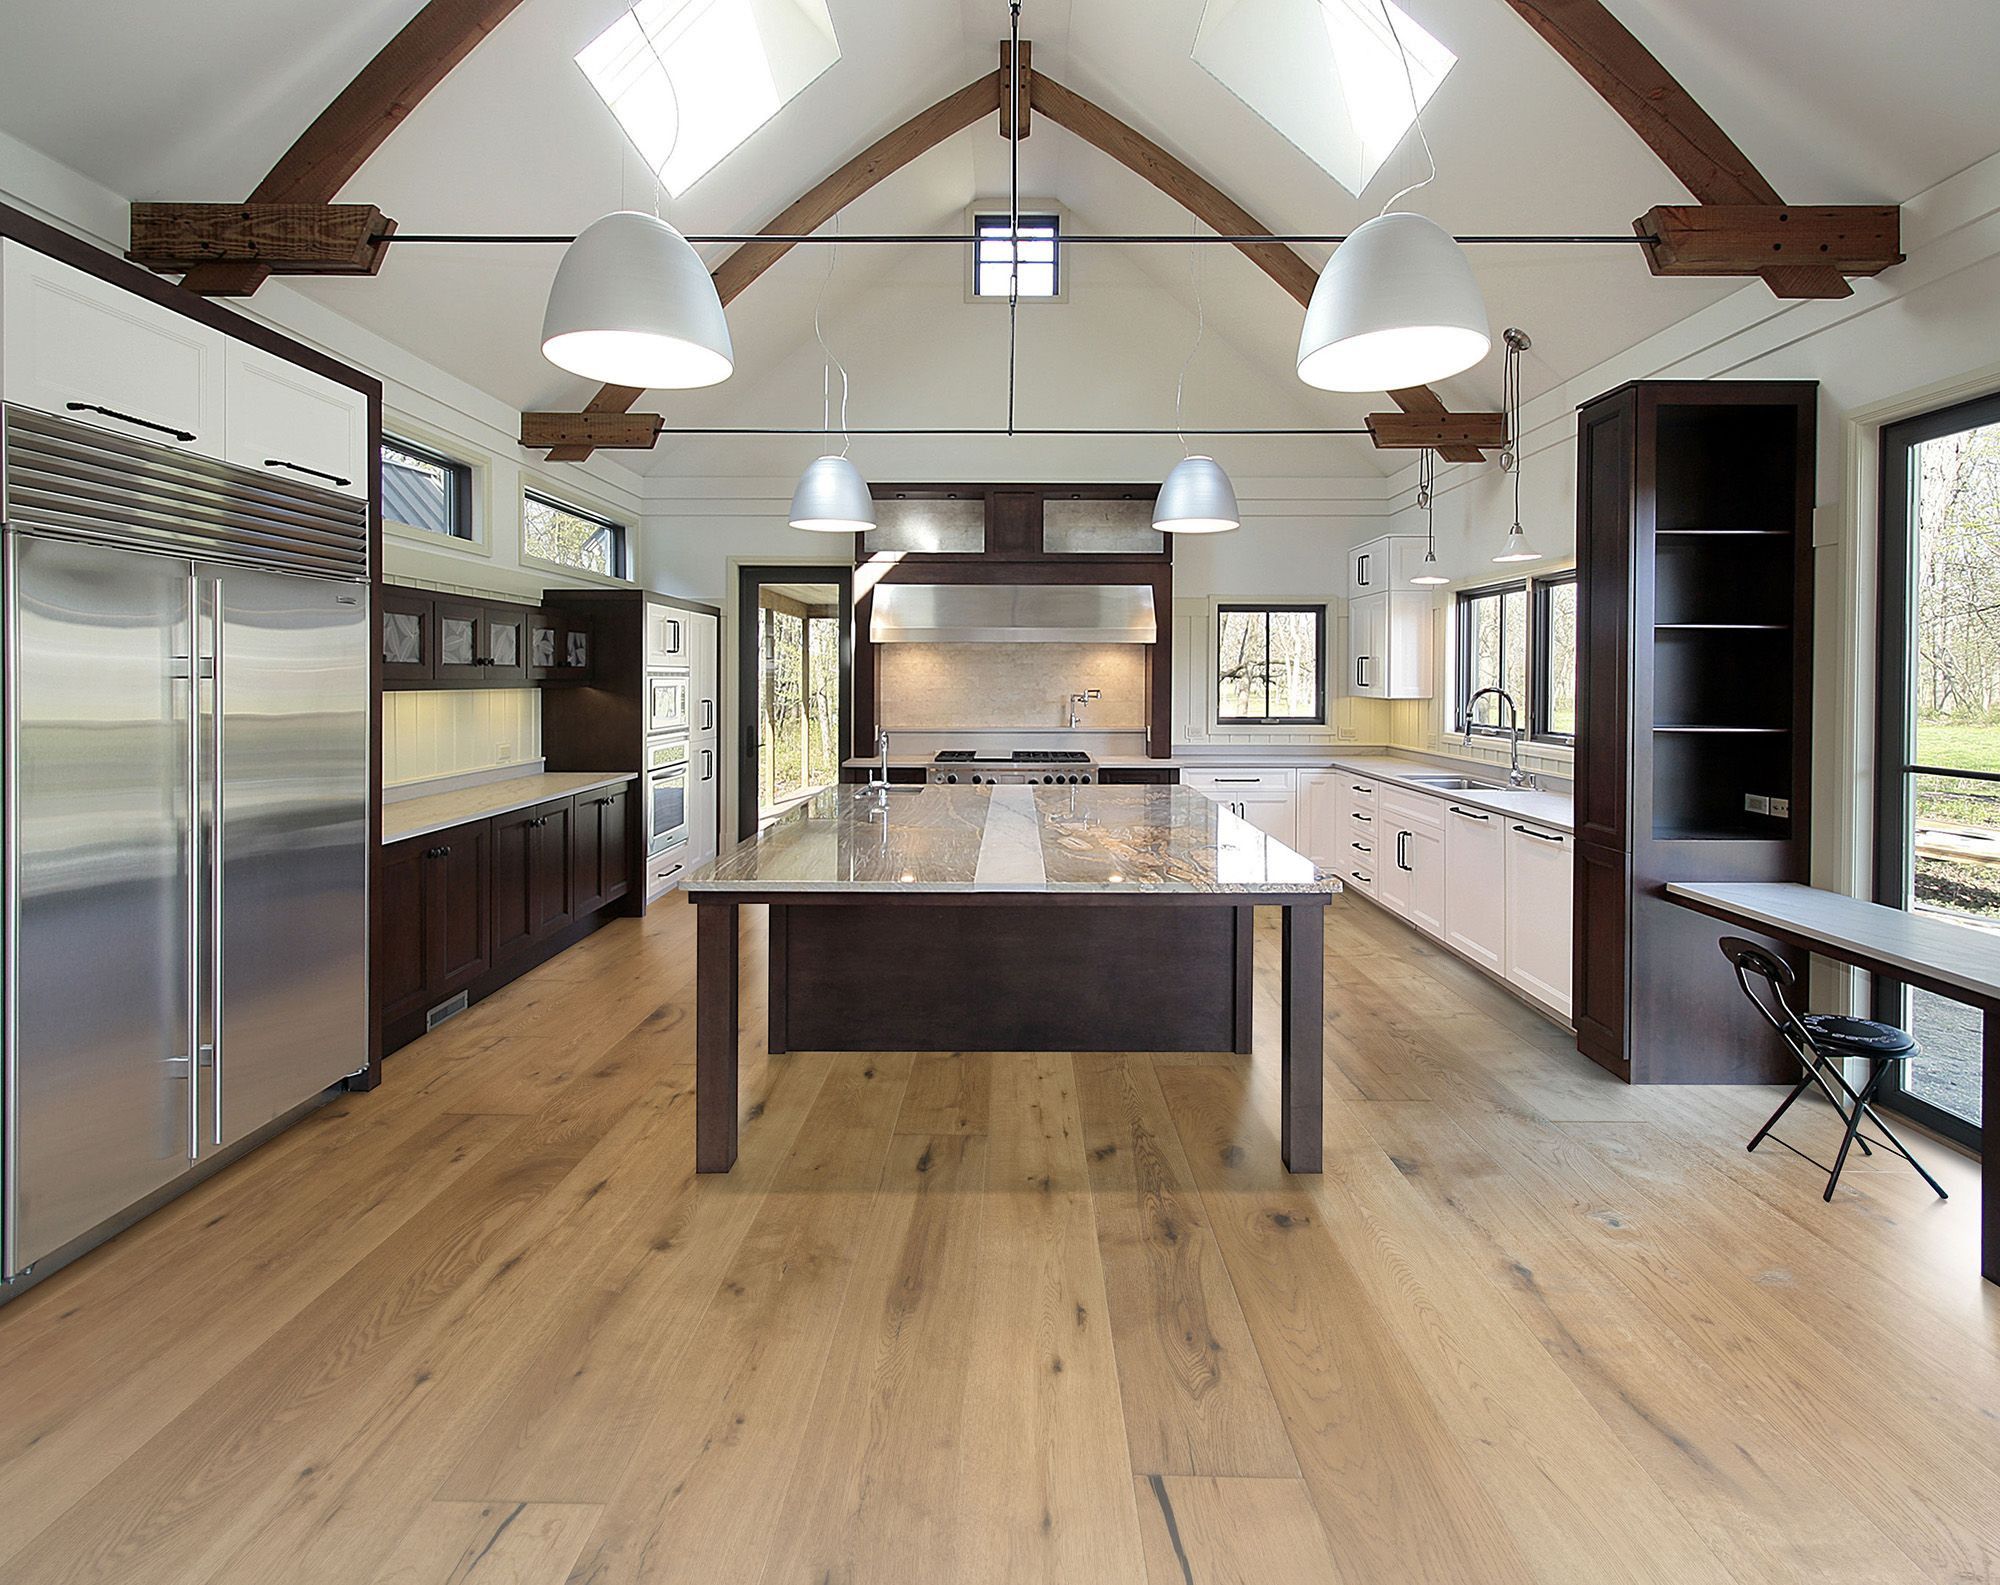 how much does oak hardwood flooring cost of builddirecta heritage collection engineered hardwood european intended for builddirecta heritage collection engineered hardwood european white oak acoustic